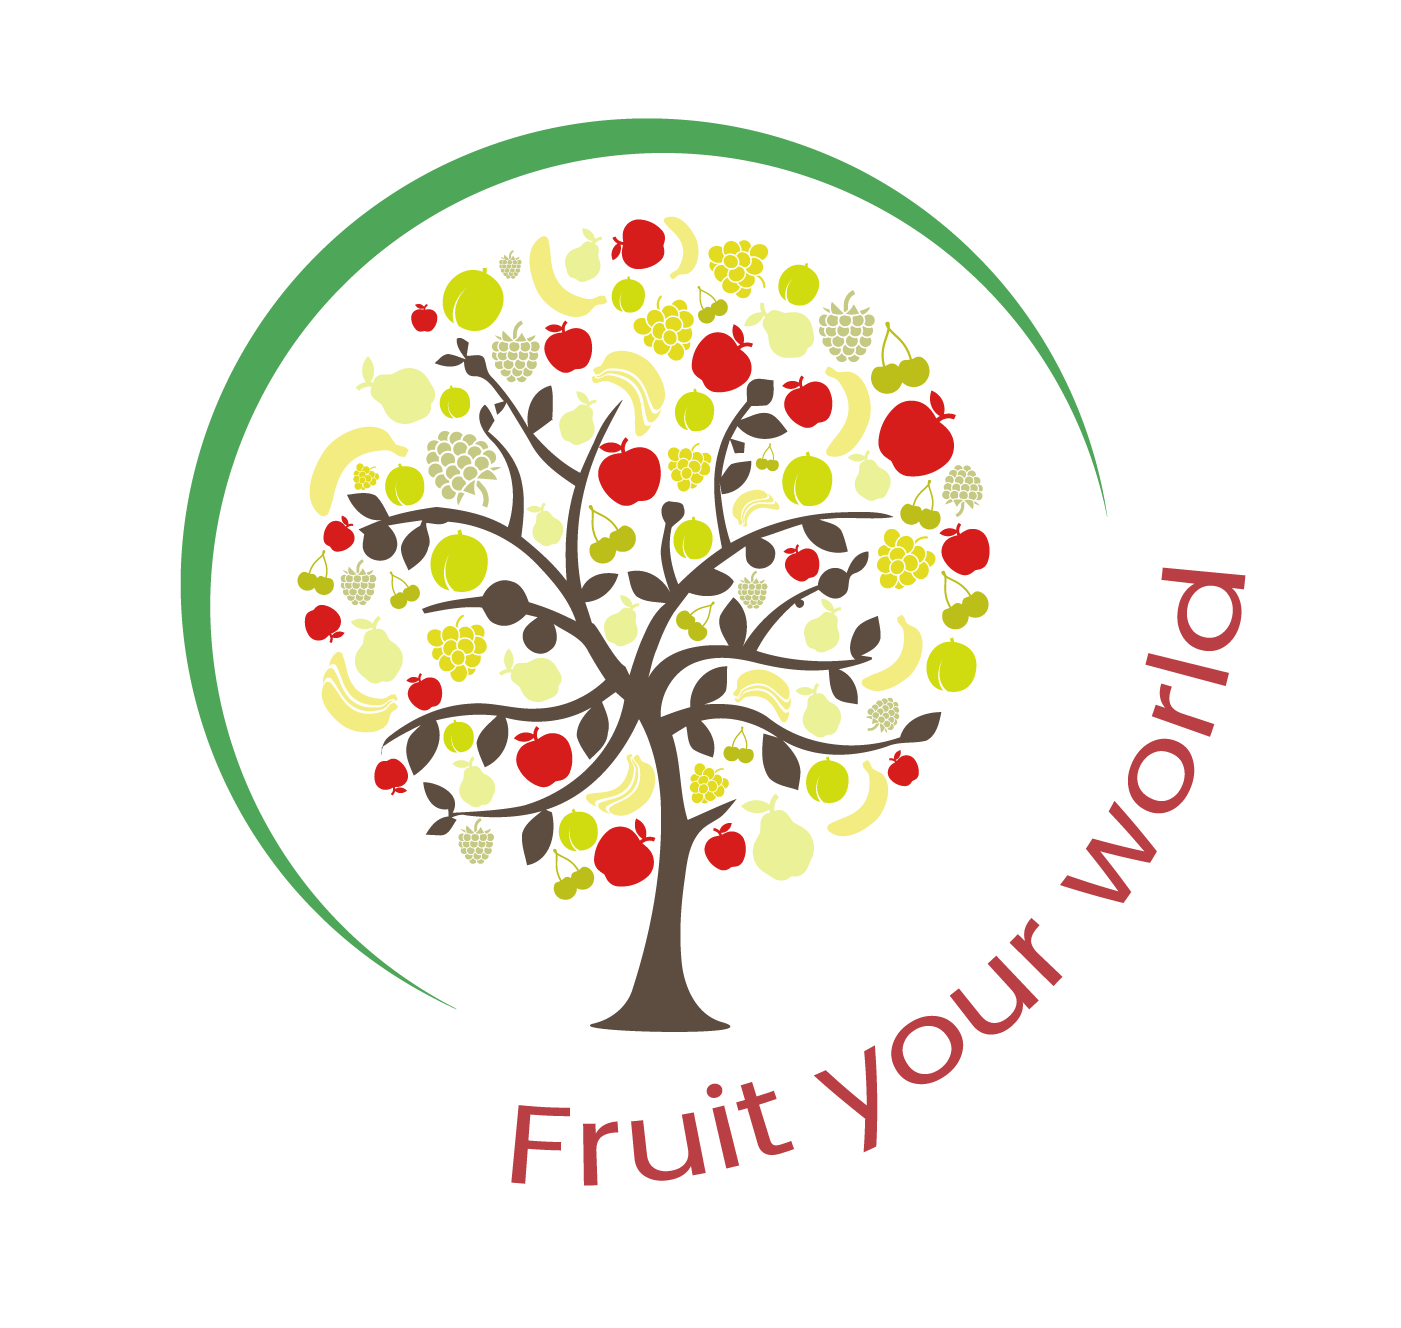 Stichting Fruit Your World